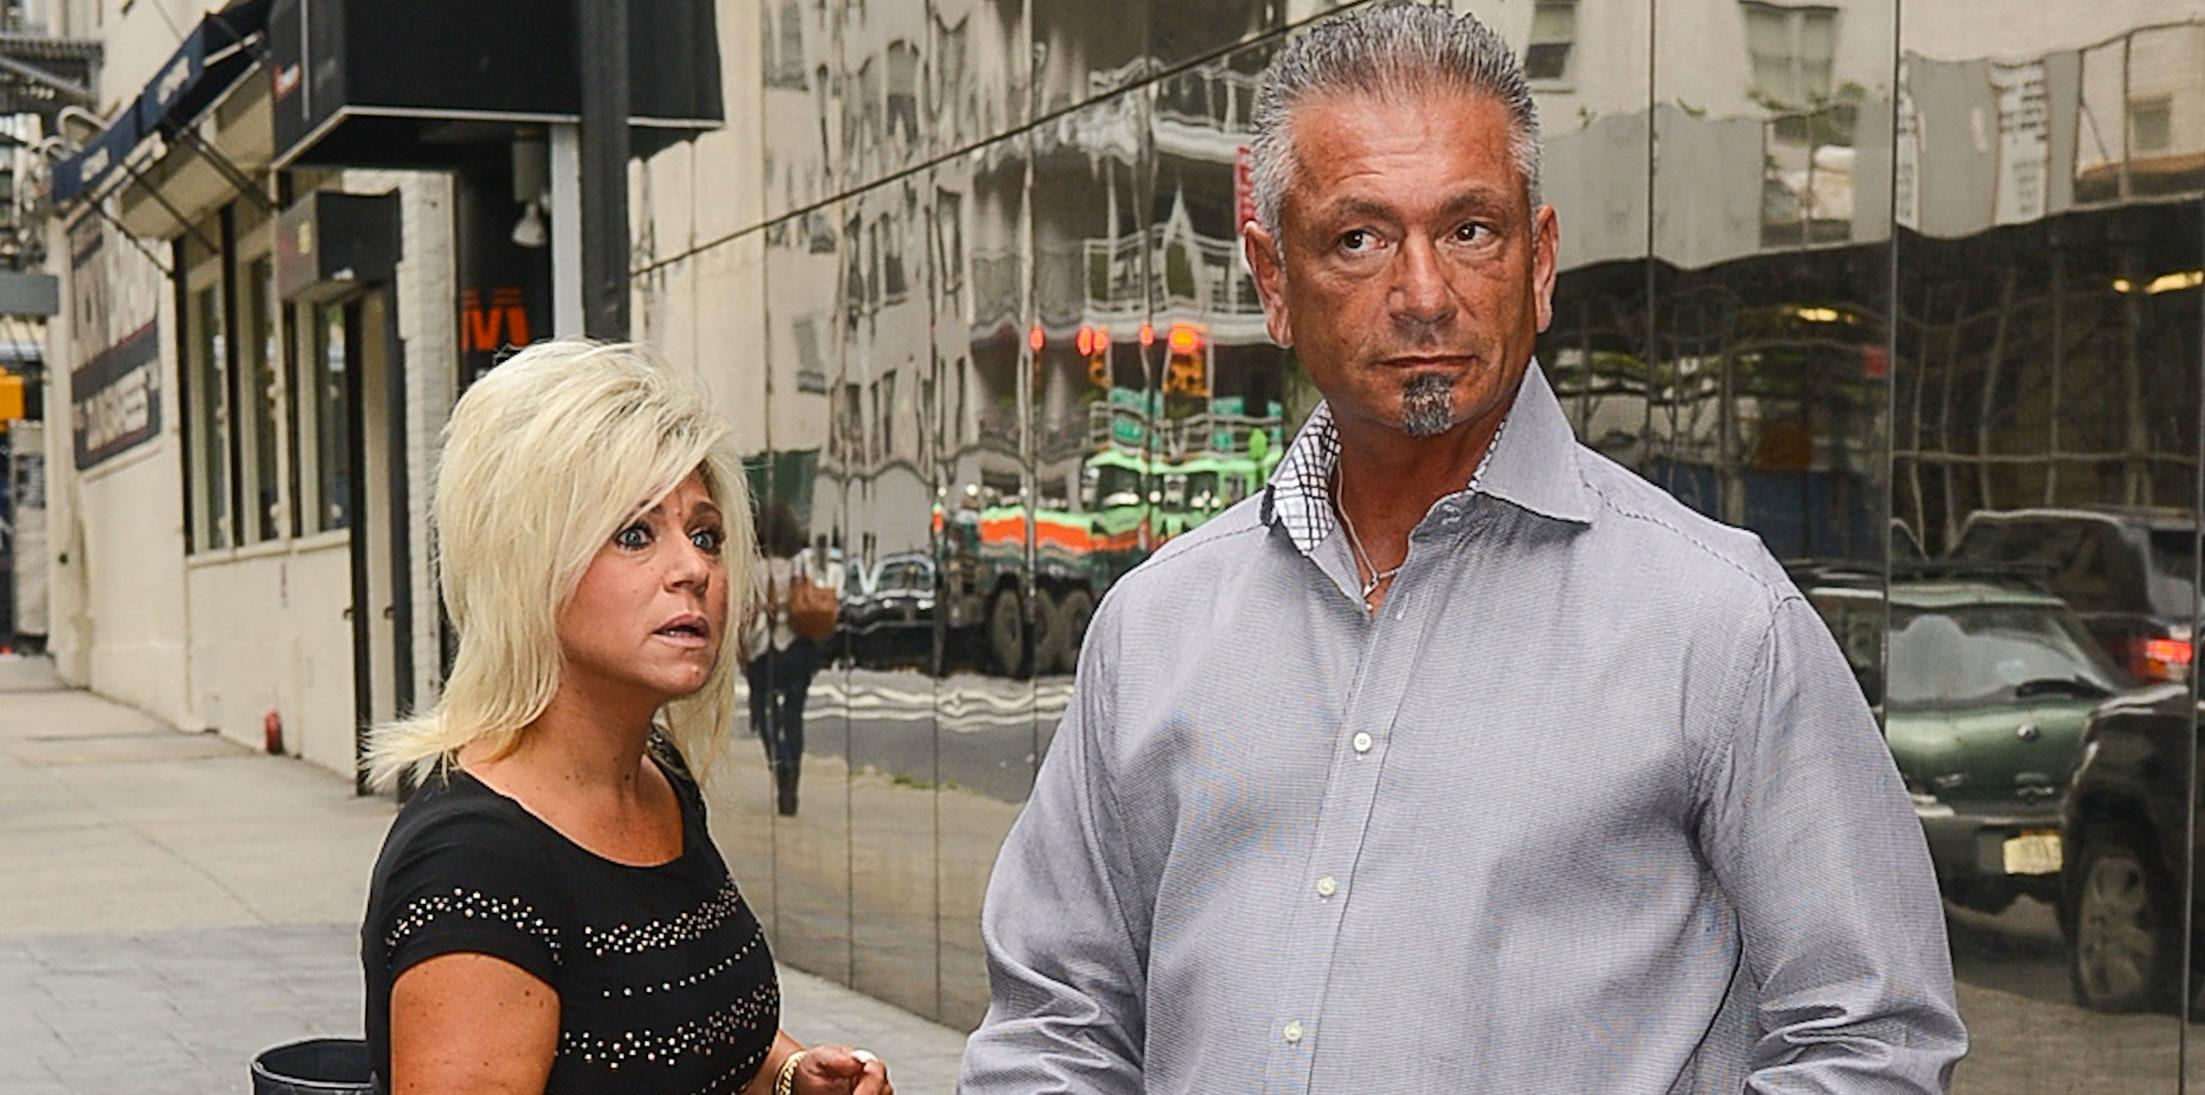 long island medium theresa larry caputo divorce video long